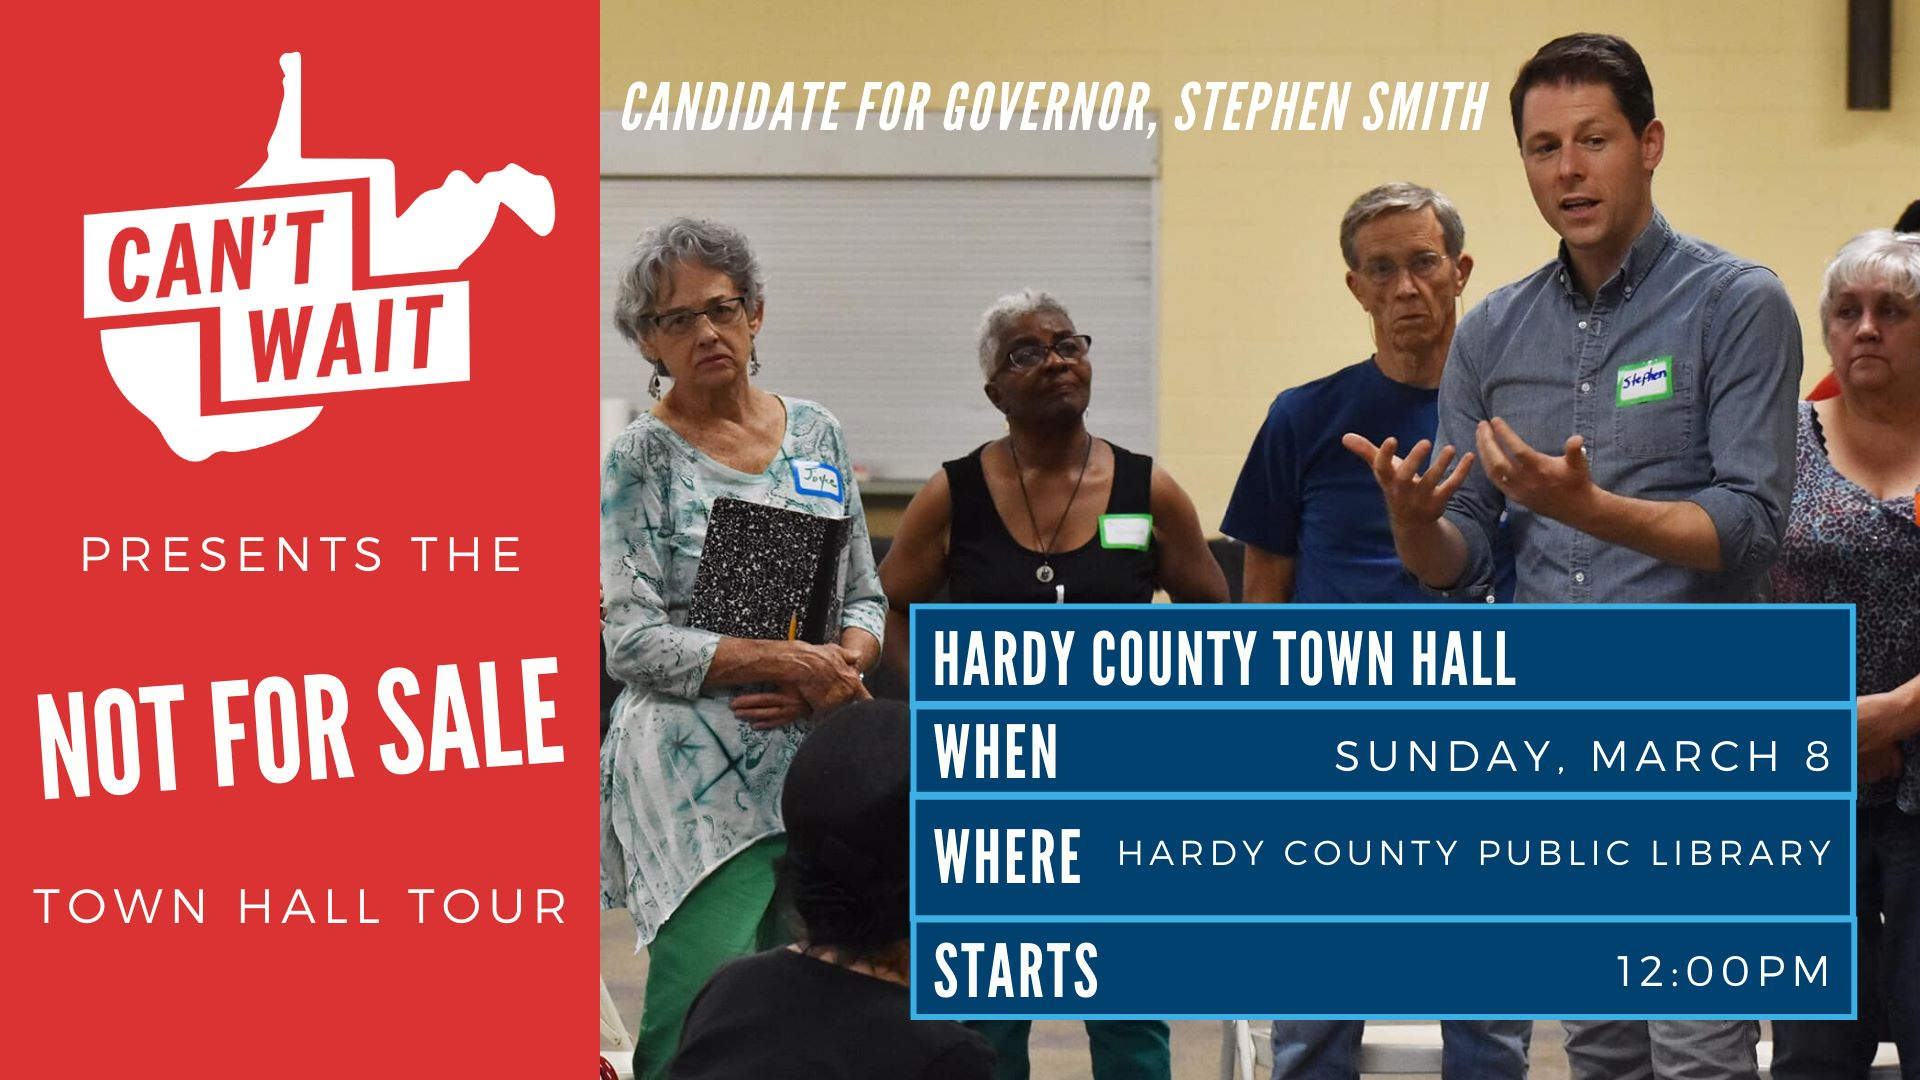 Hardy County Town Hall graphic